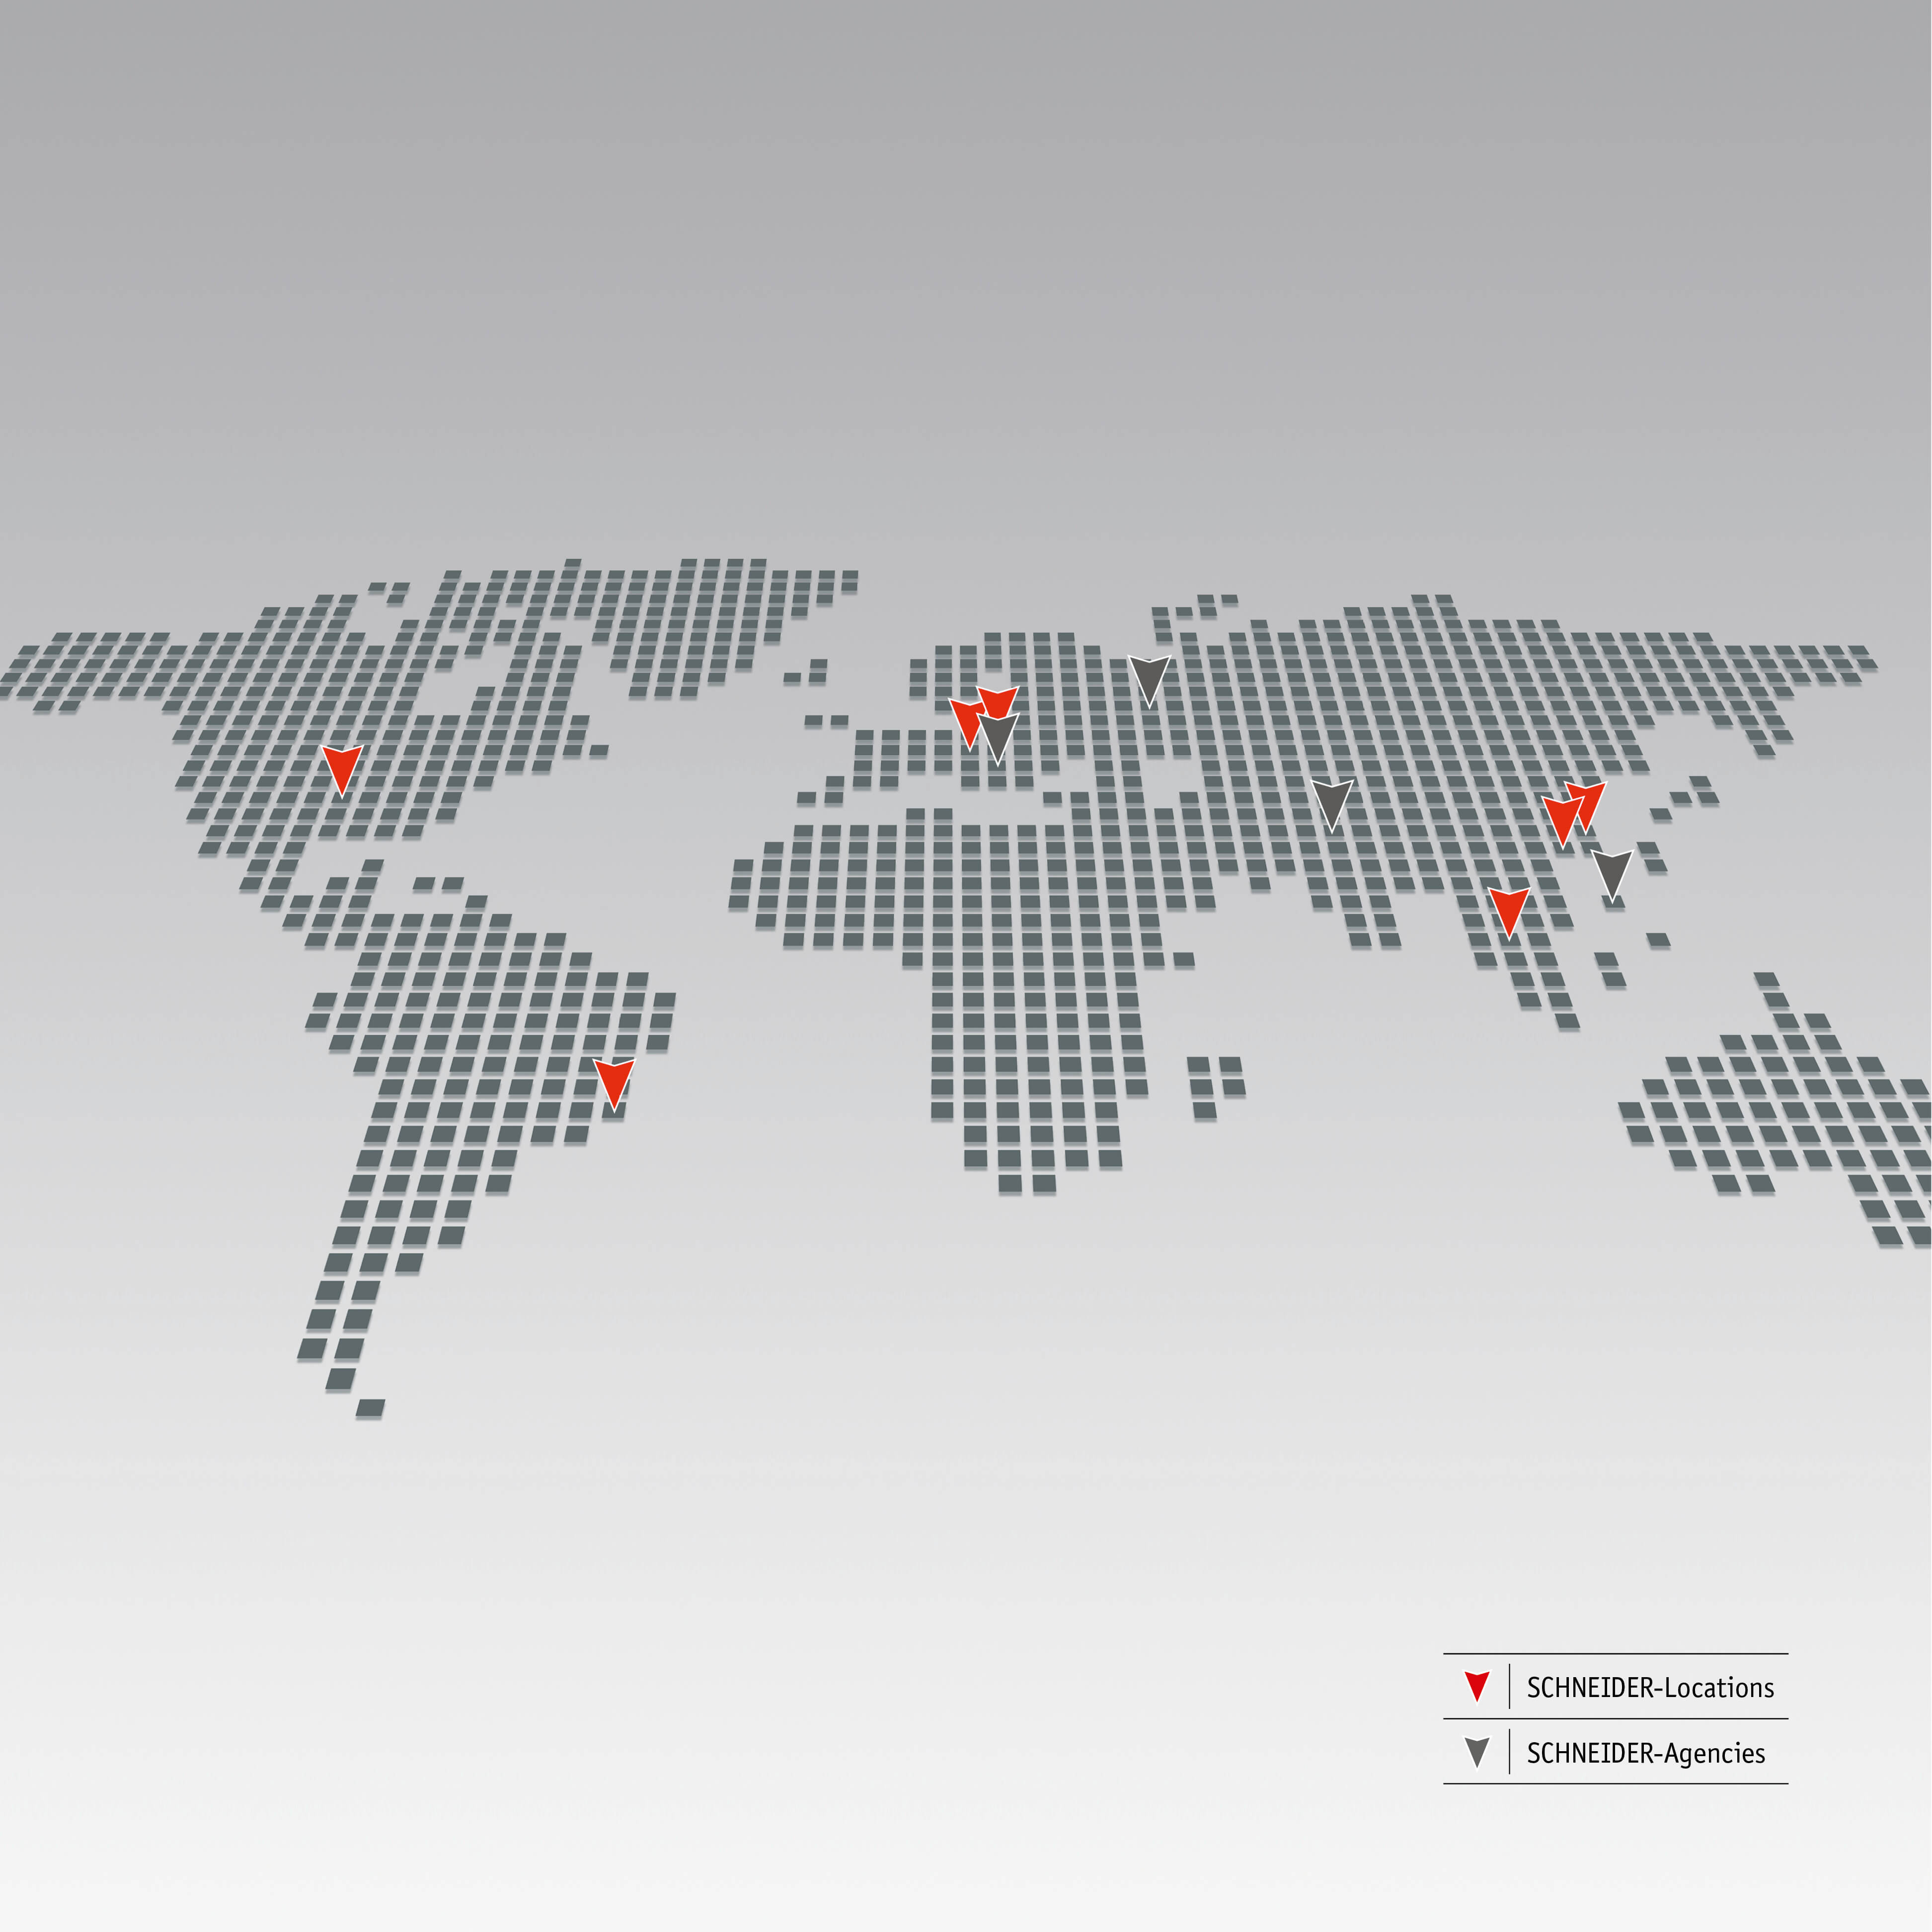 Worldwide - Schneider Optical Machines